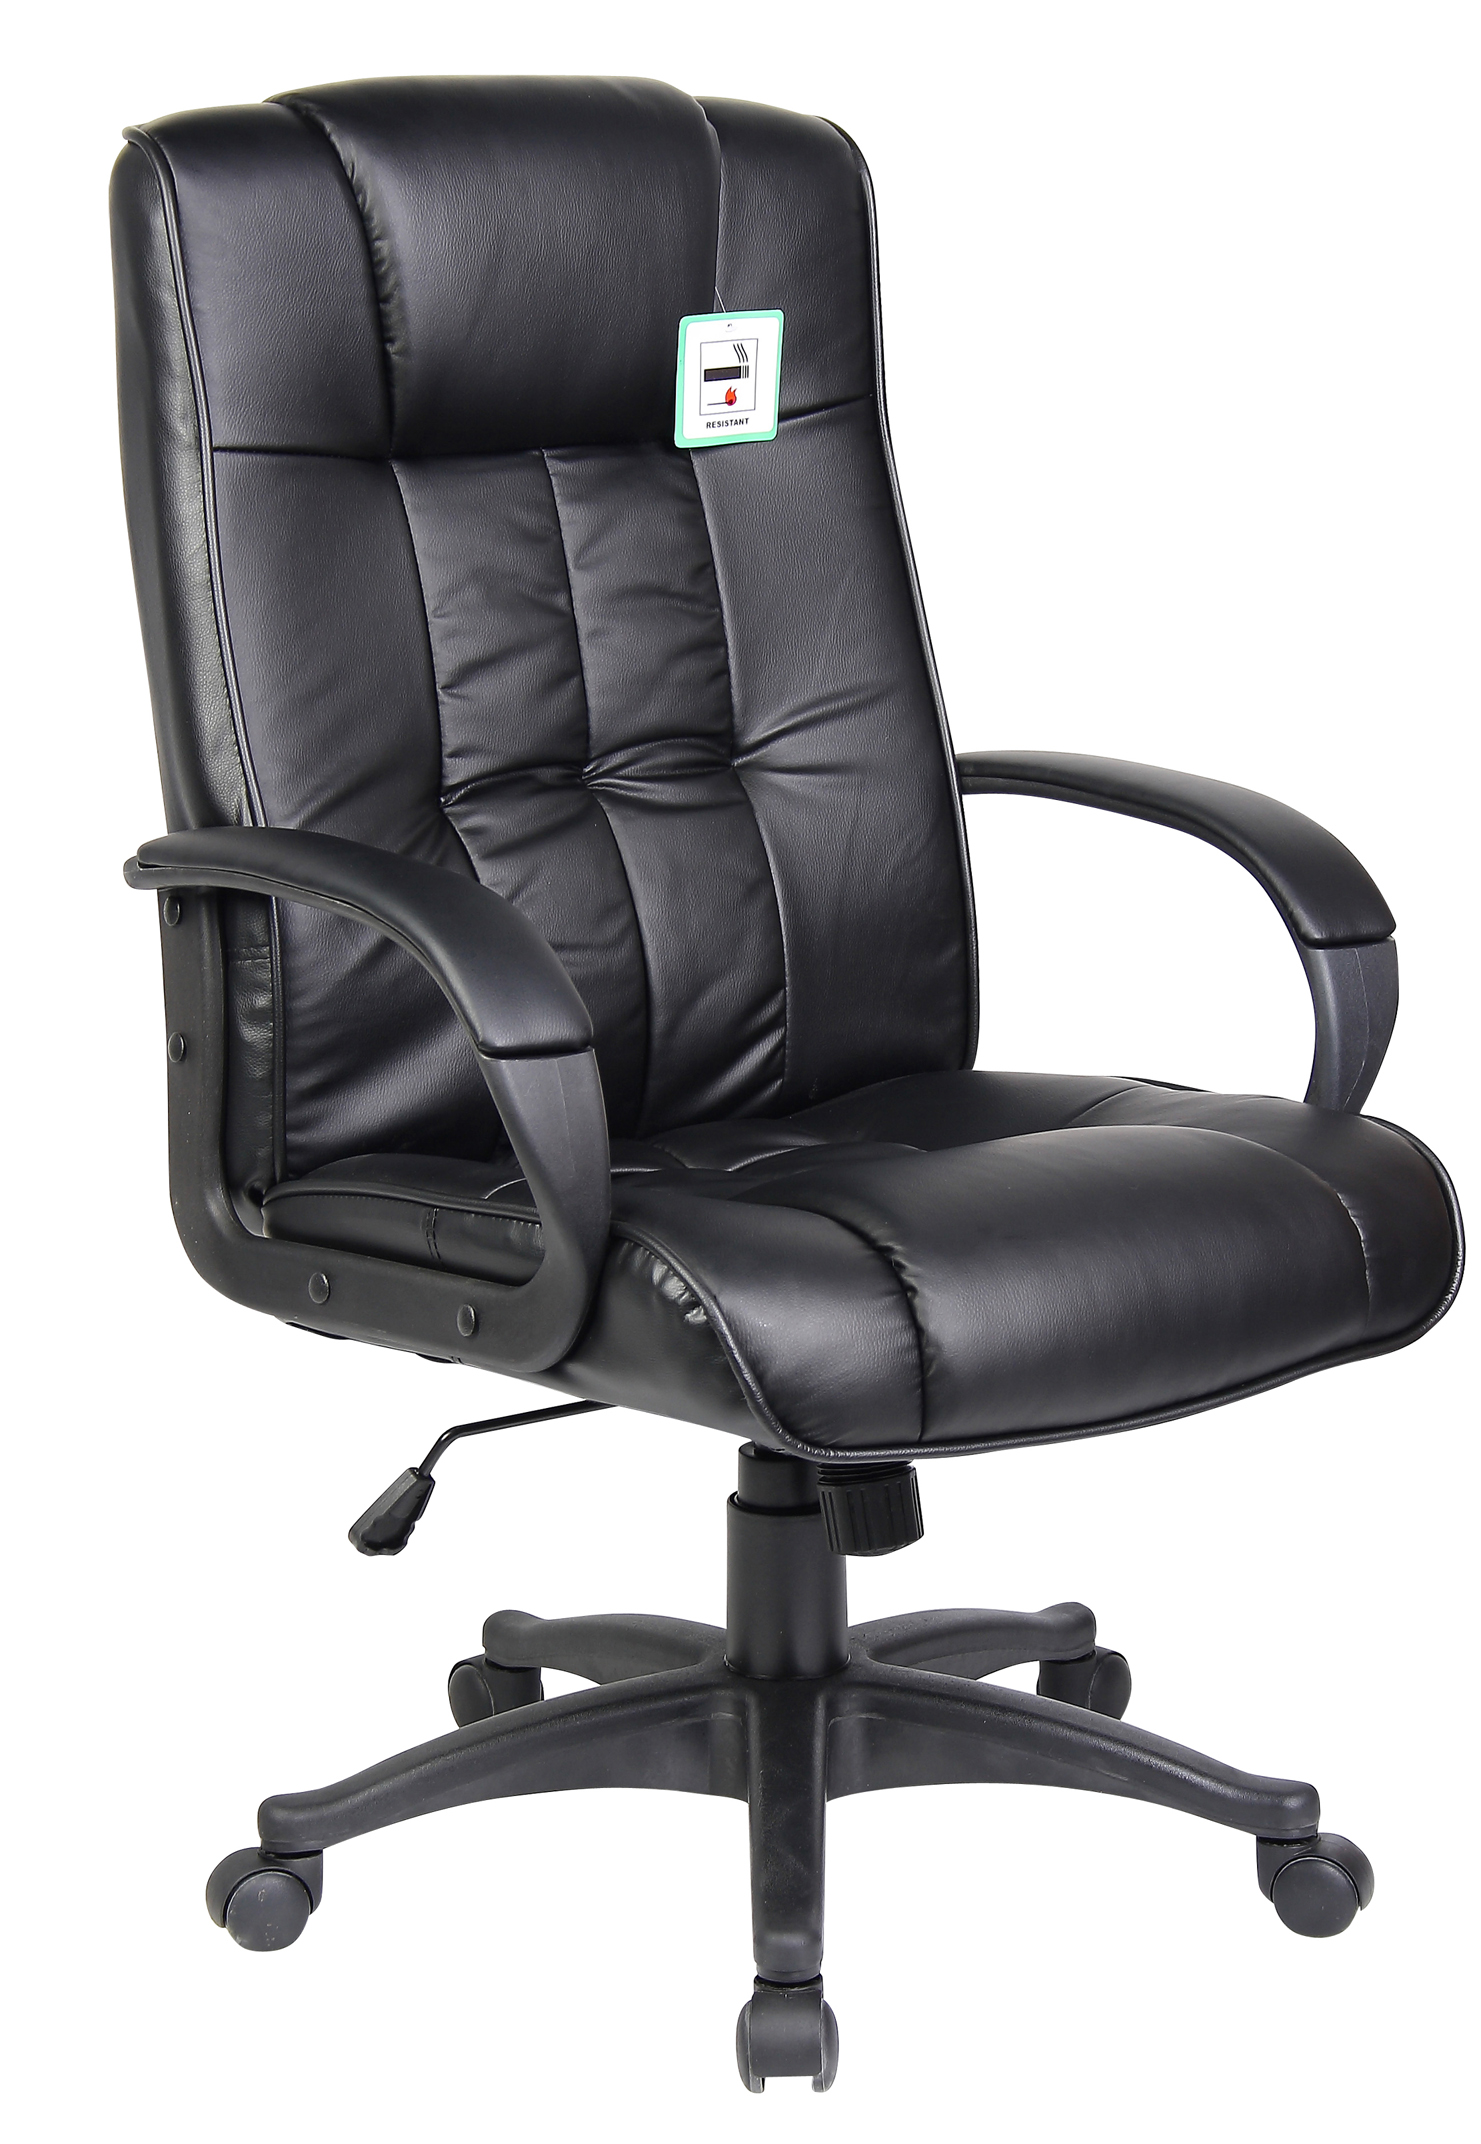 new swivel executive office furniture computer desk office chair in pu leather ebay. Black Bedroom Furniture Sets. Home Design Ideas